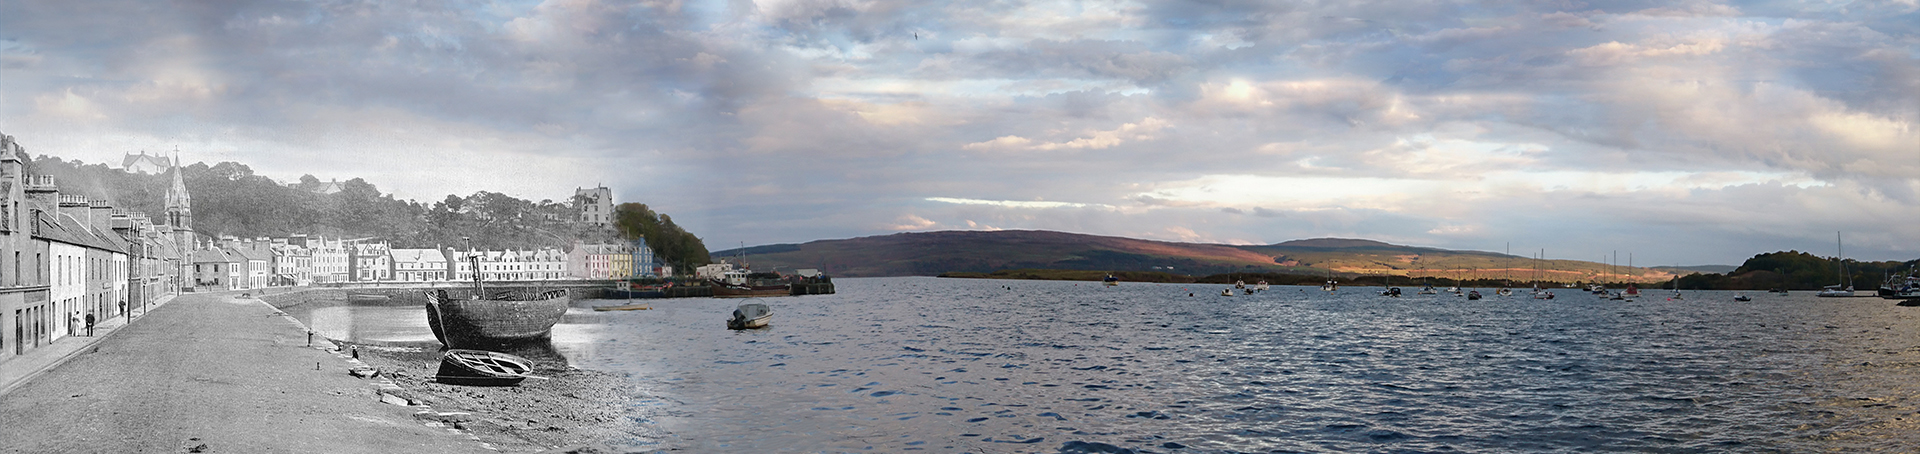 Tobermory of Today and Yesteryear